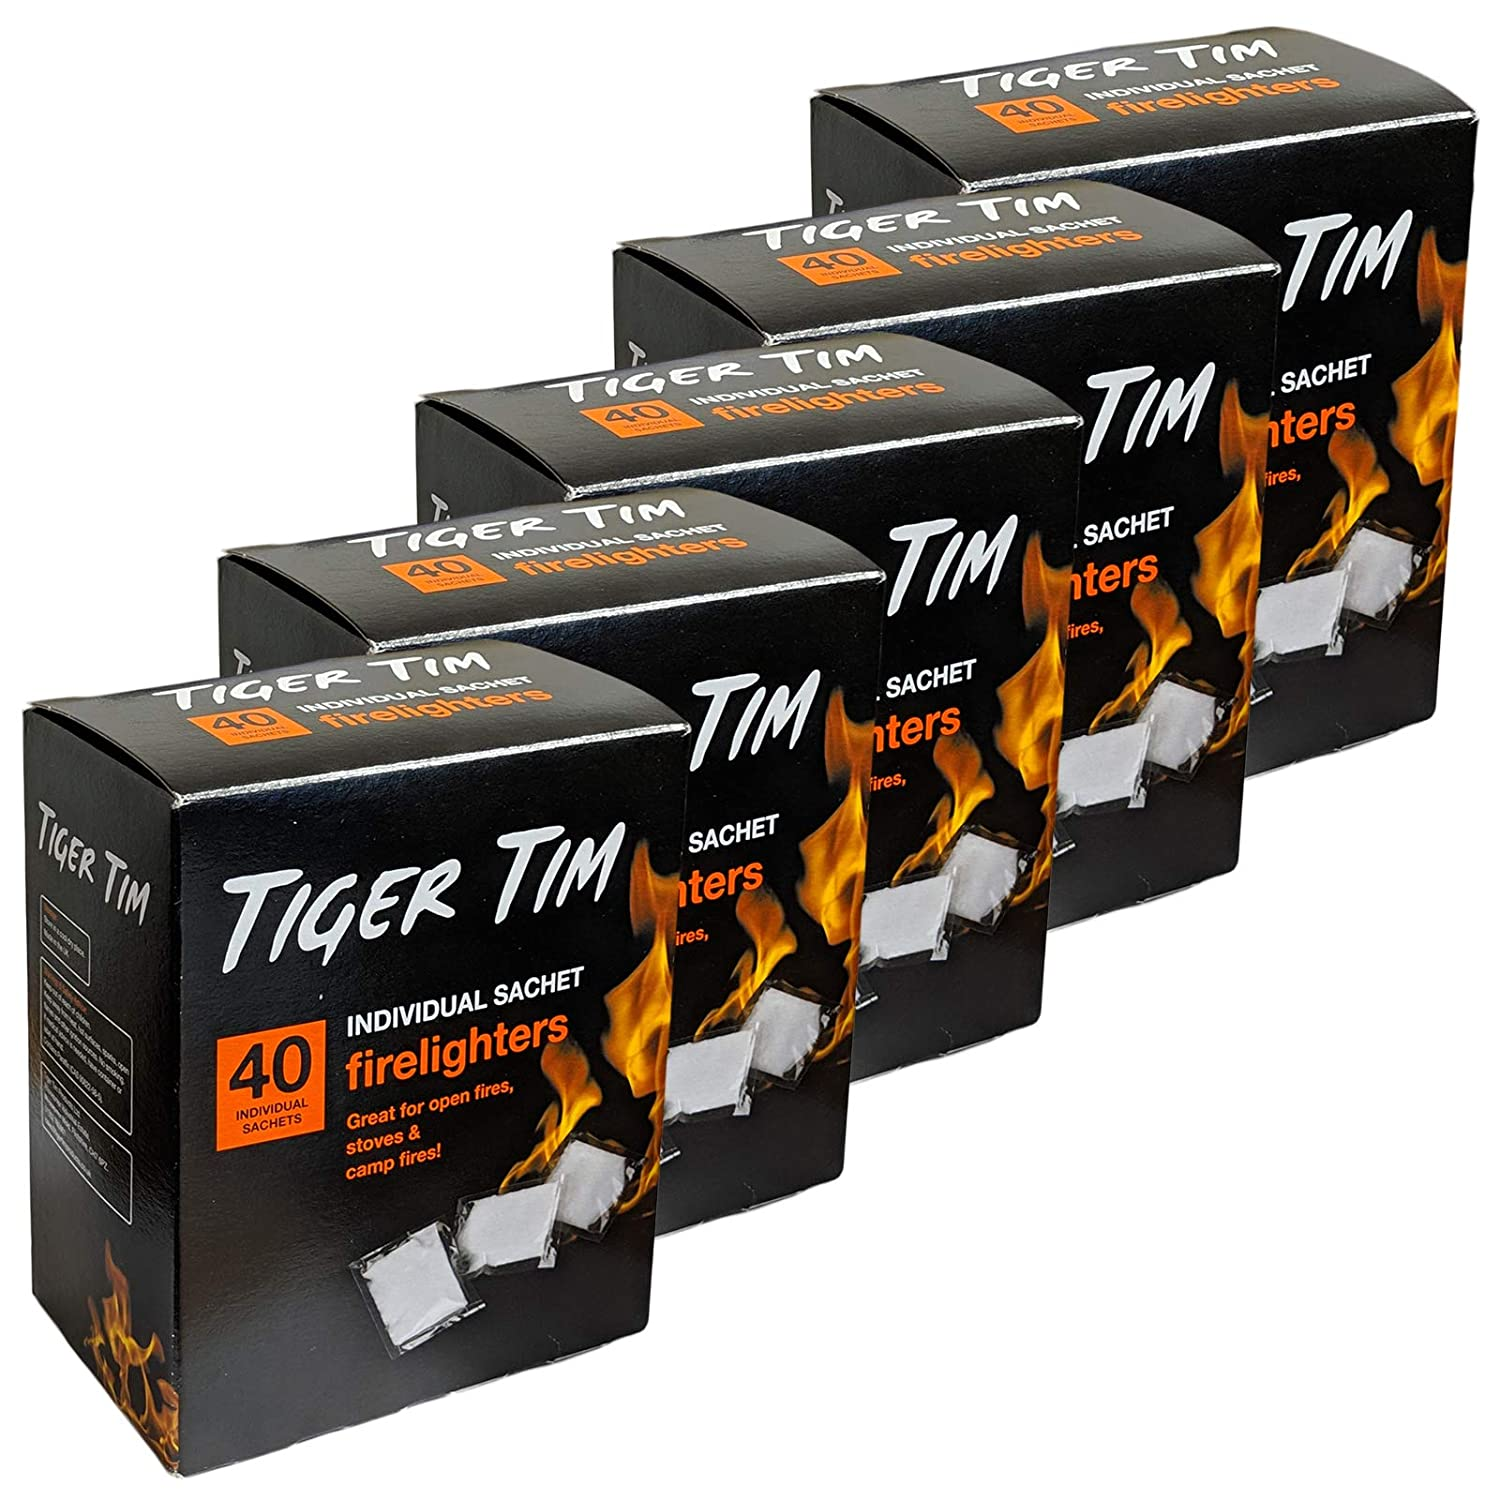 Tiger Tim 200 Sachet Firelighters Mess-Free Safe Odourless Instant Fire Starter for Wood Burners Barbecues Stoves Grills Campfires